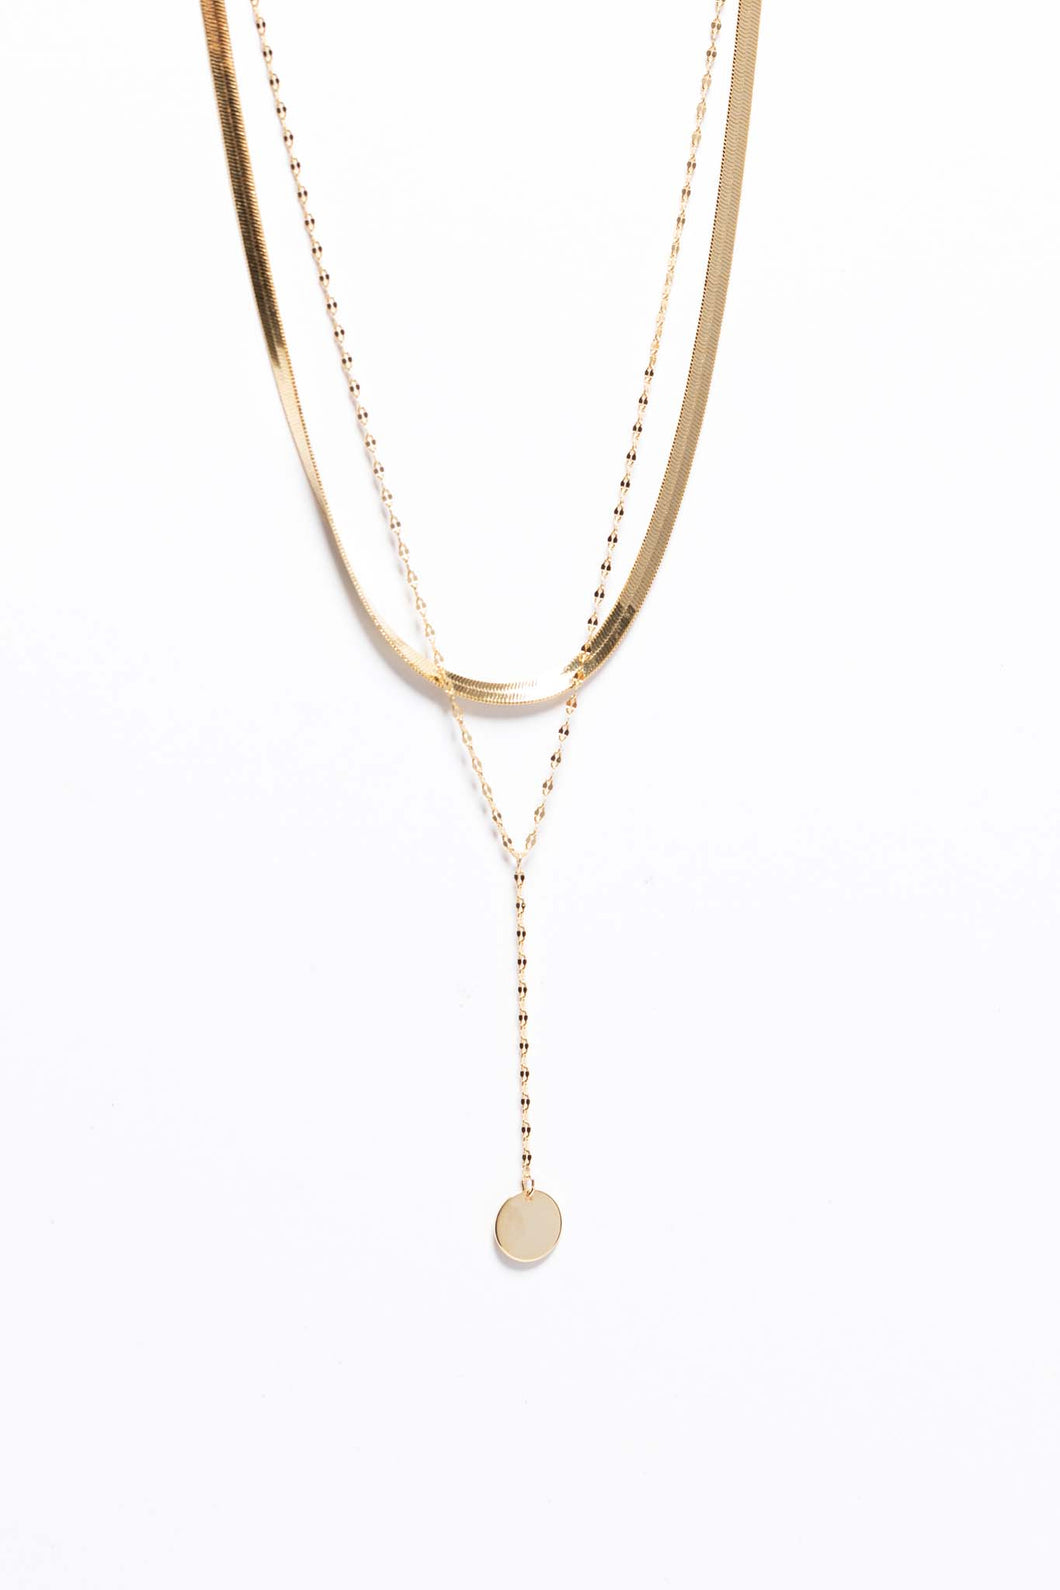 Chels Layered Necklace - Gold